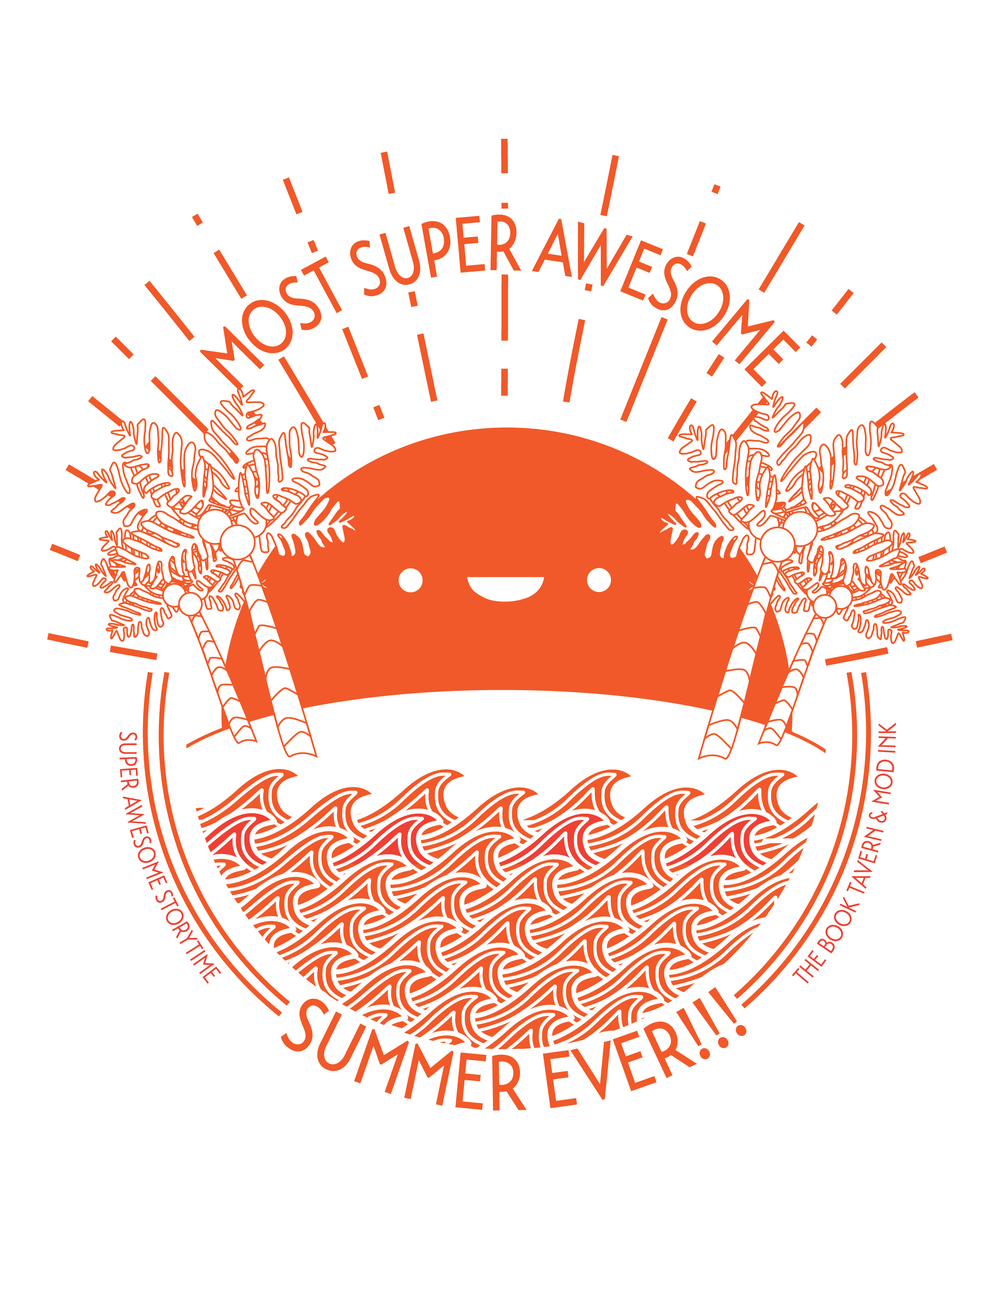 Most+Super+Awesome+Summer+Ever+Design+for+Storytime2-01.png